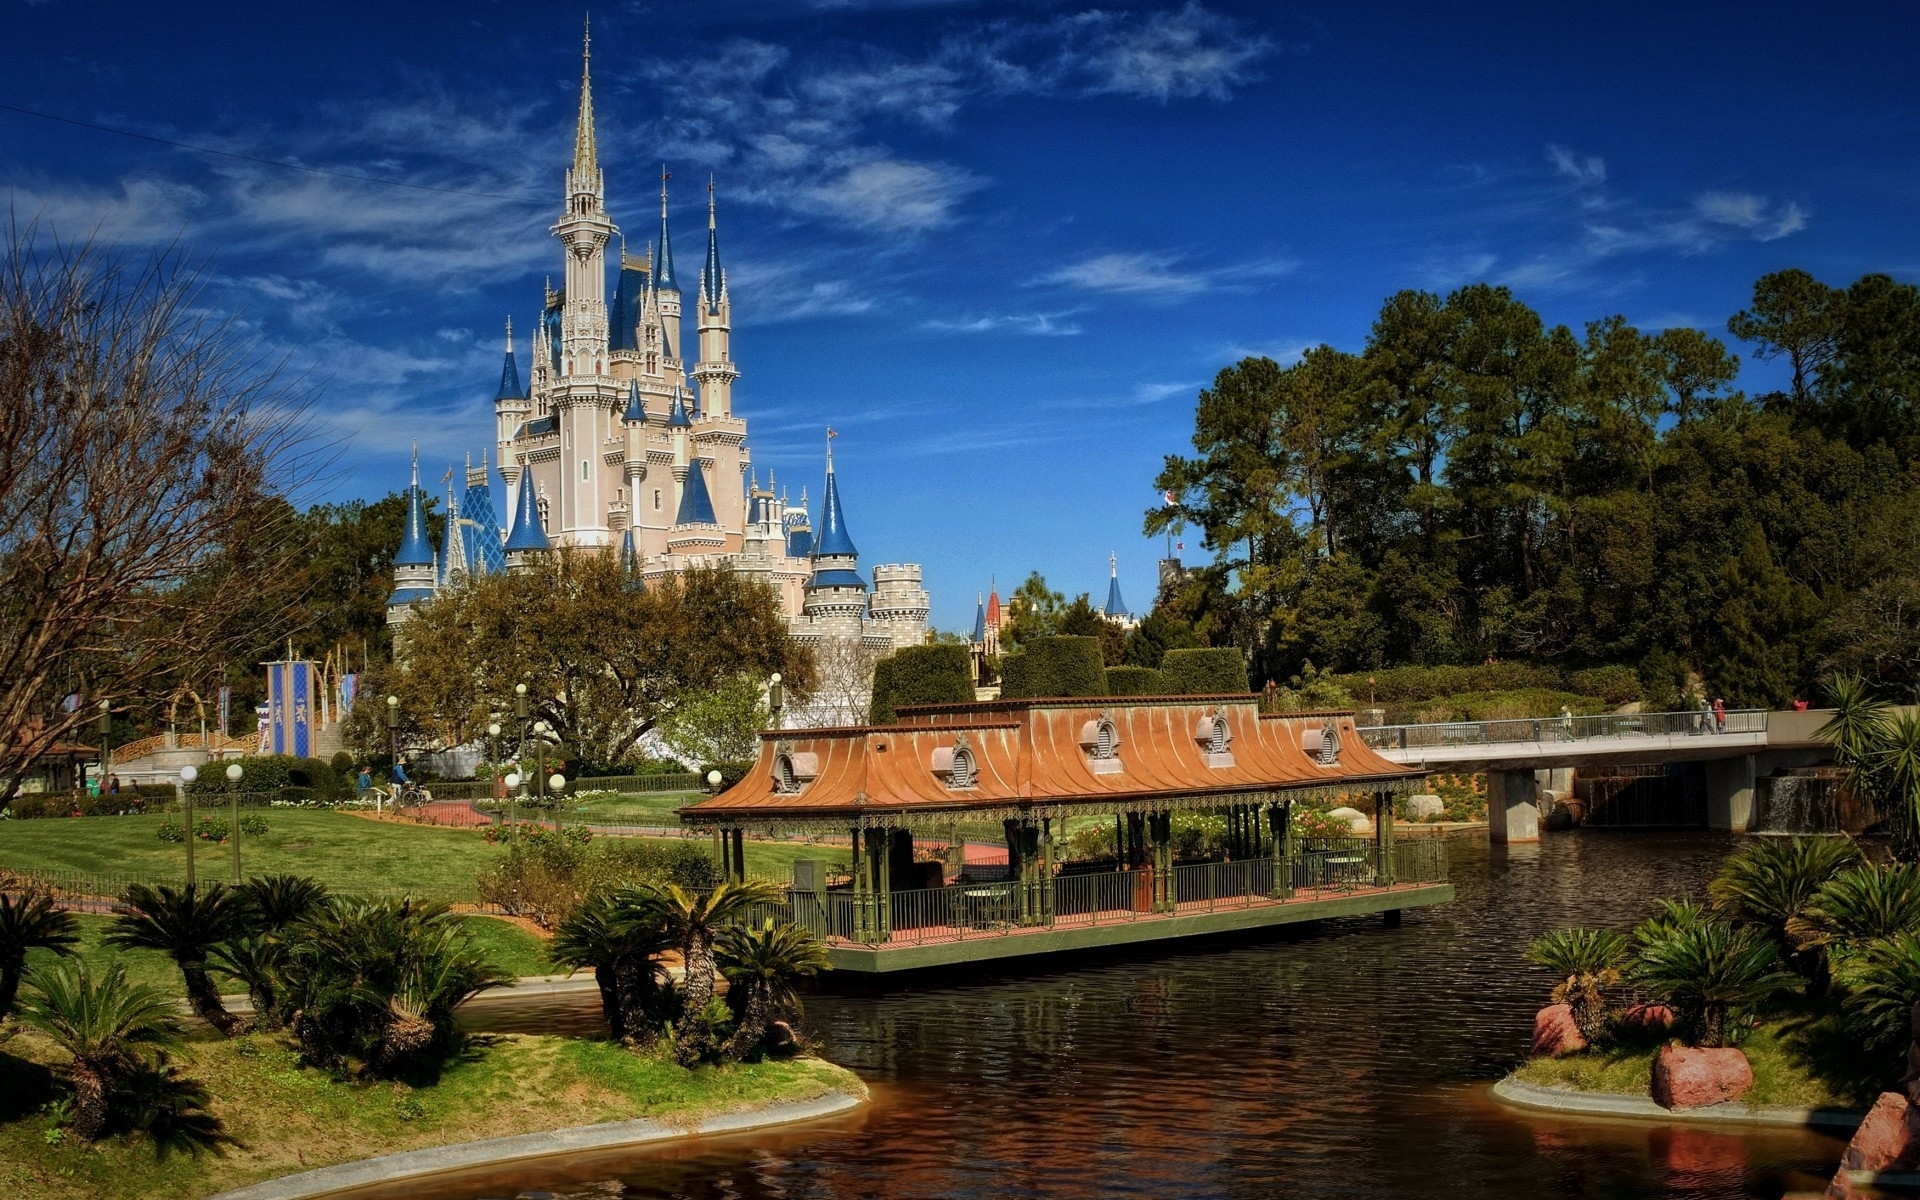 Wallpaper iphone uk - Disney World Wallpaper Wallpaper Disney World Wallpaper Hd Wallpaper